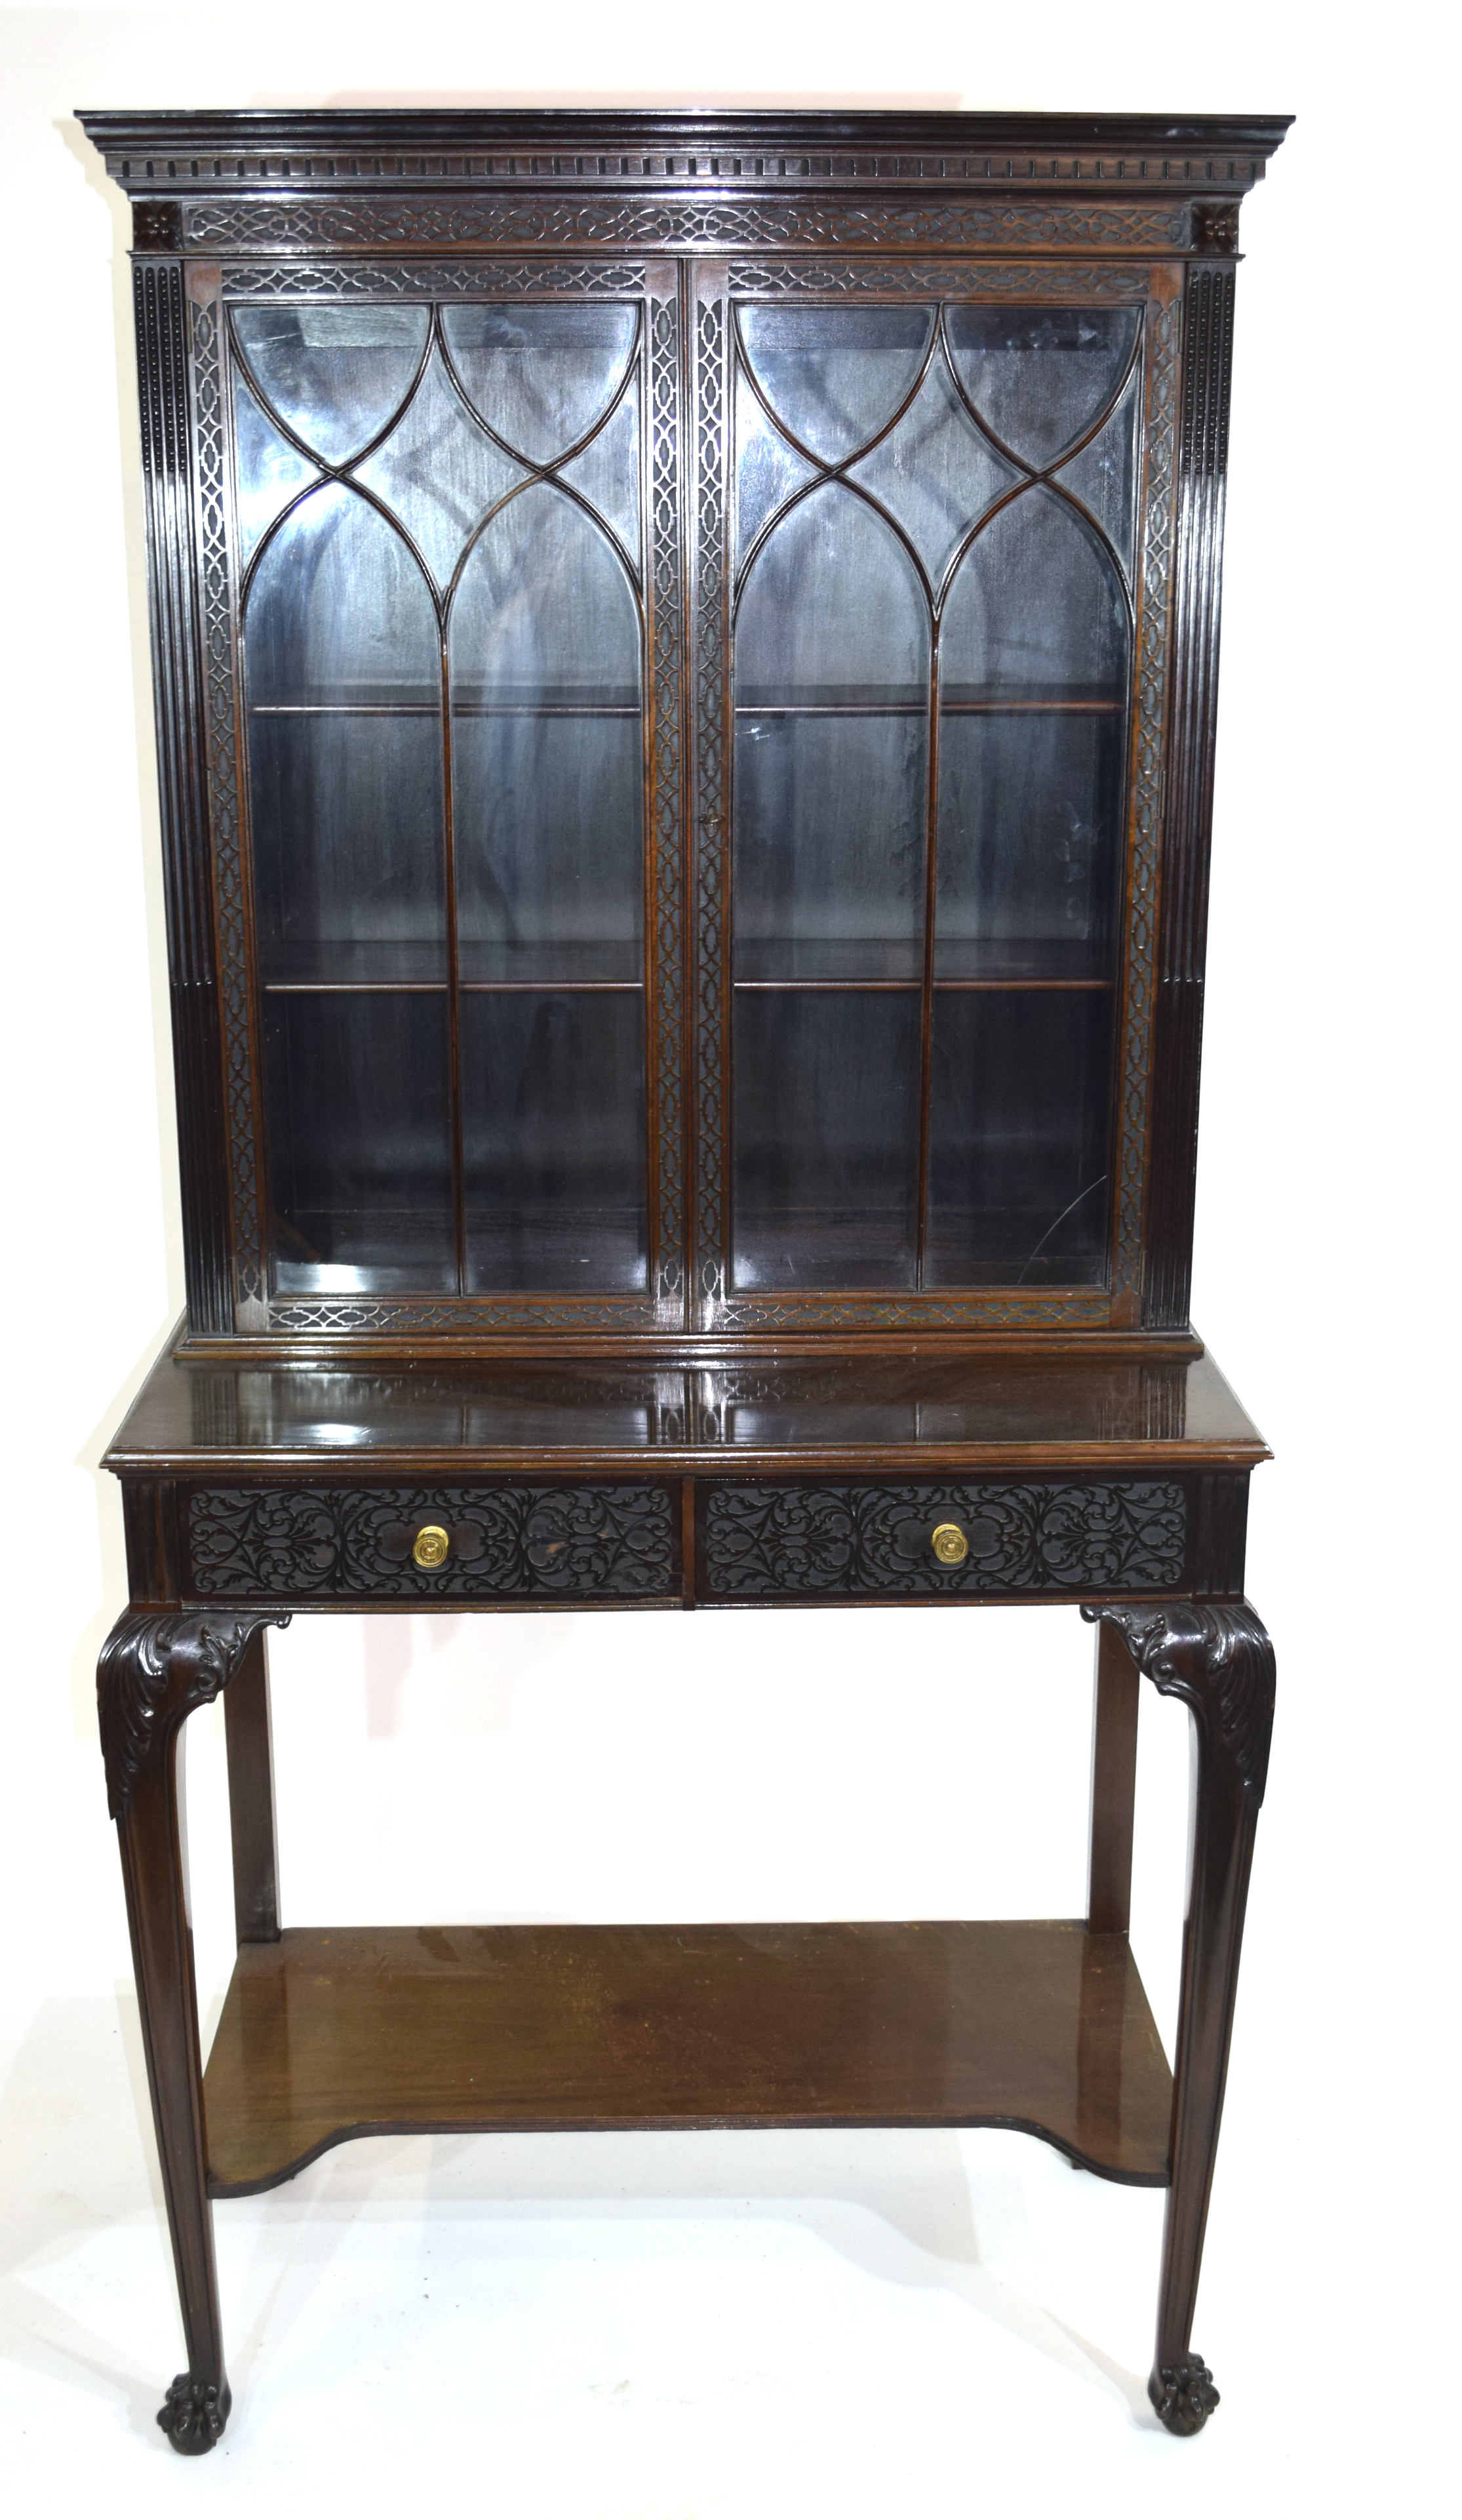 Edwardian mahogany side cabinet with shaped cornice over a top section with two glazed doors and - Image 2 of 7